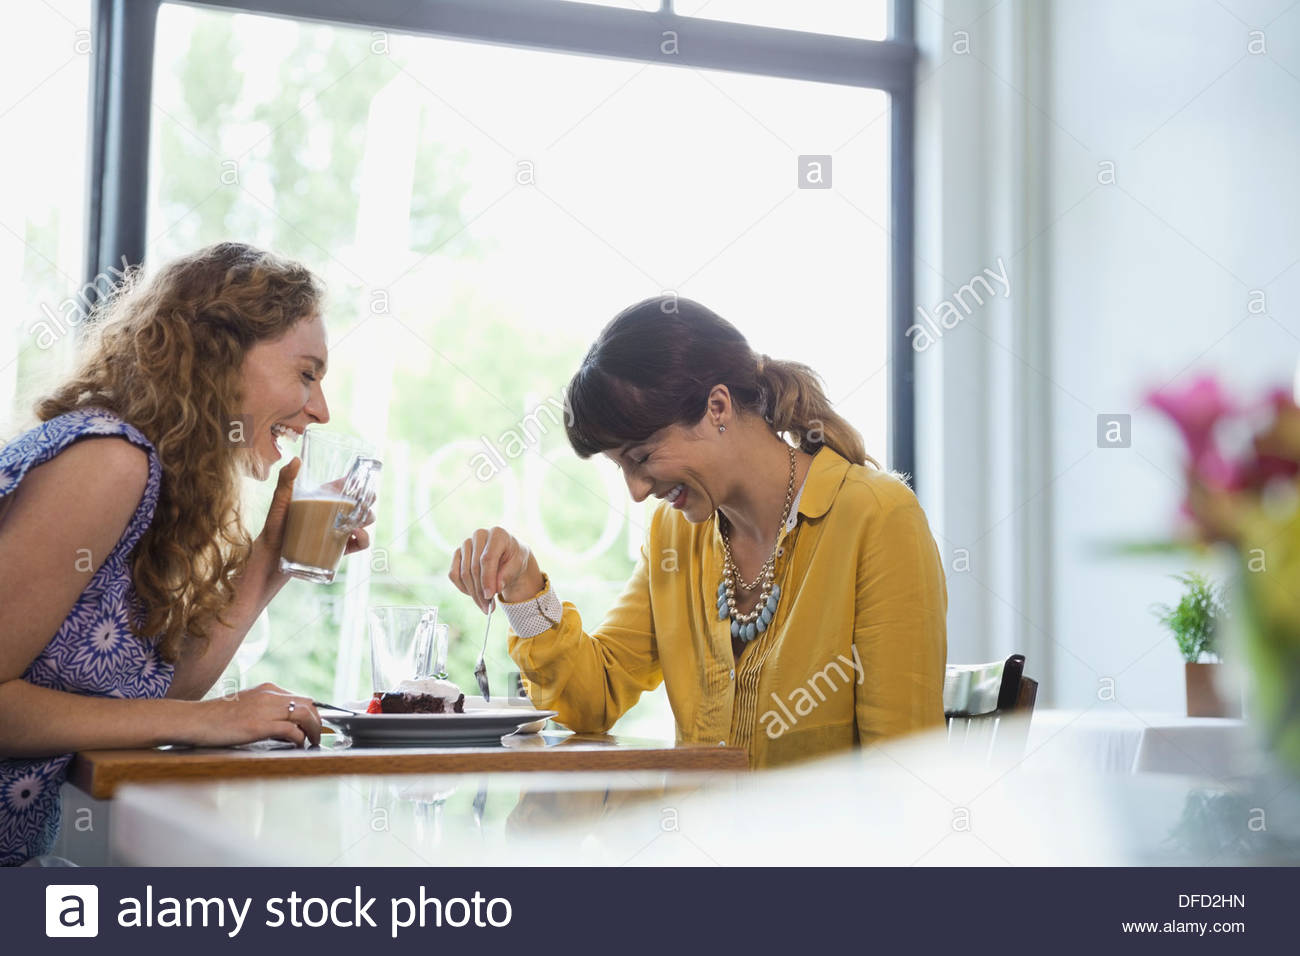 Cheerful female friends laughing in restaurant - Stock Image